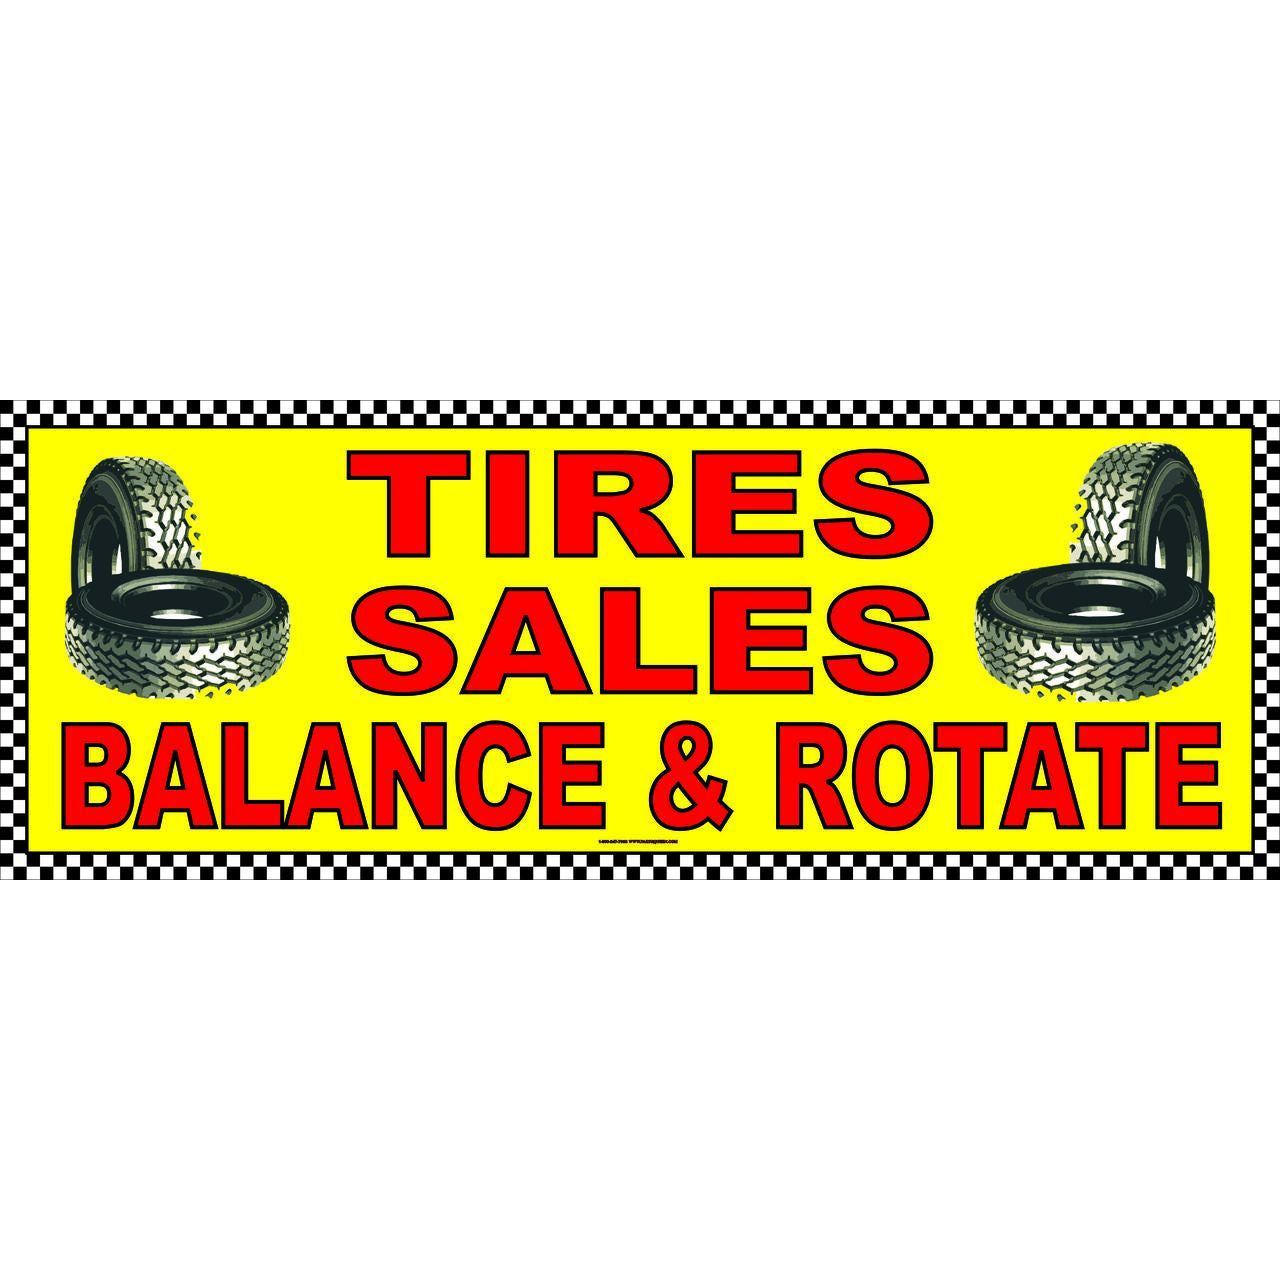 TIRES SALES BALANCE ROTATE AB250Gchk